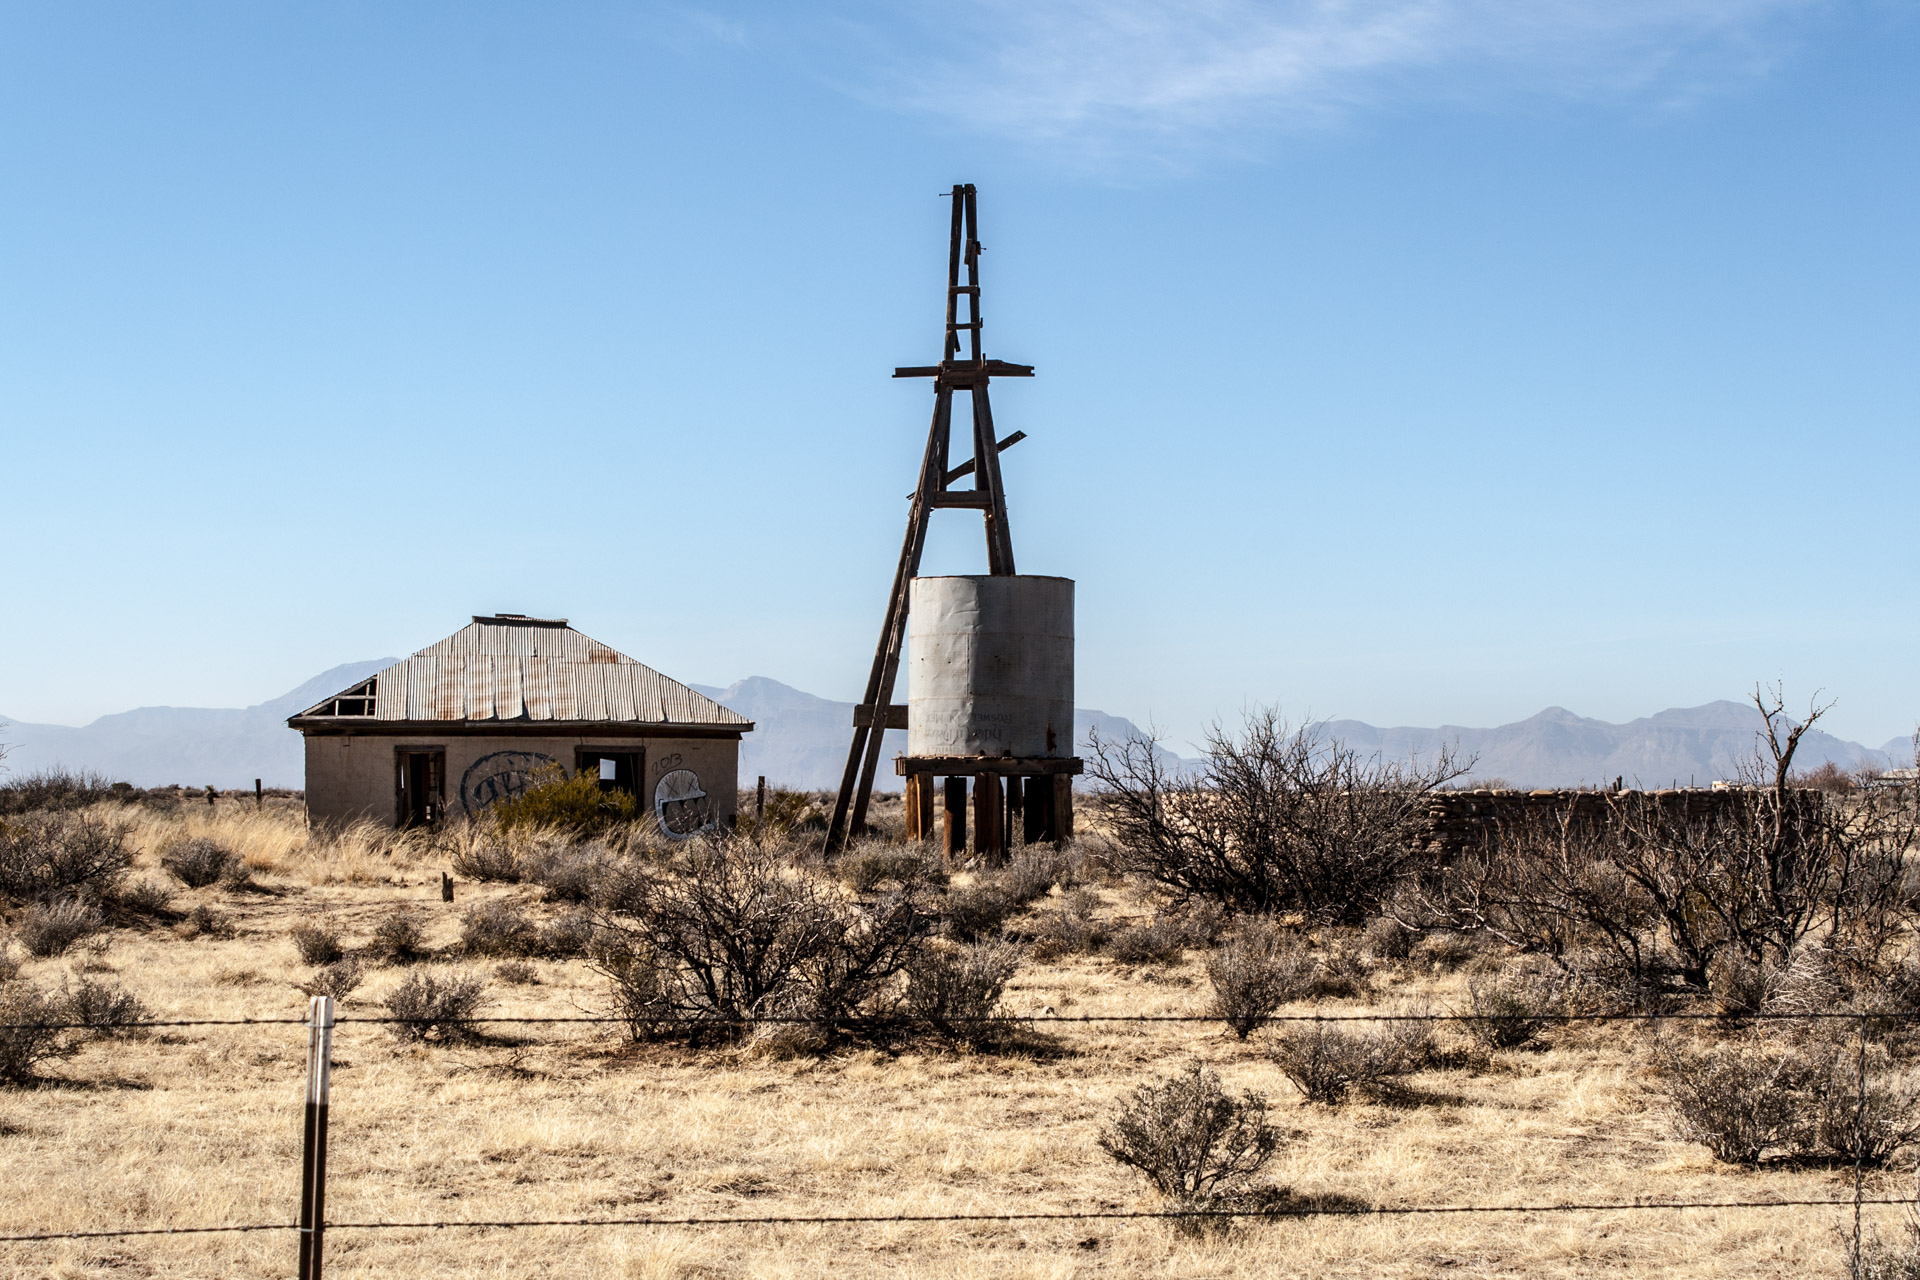 Tularosa, New Mexico - A Desert House With An Extra Large Well